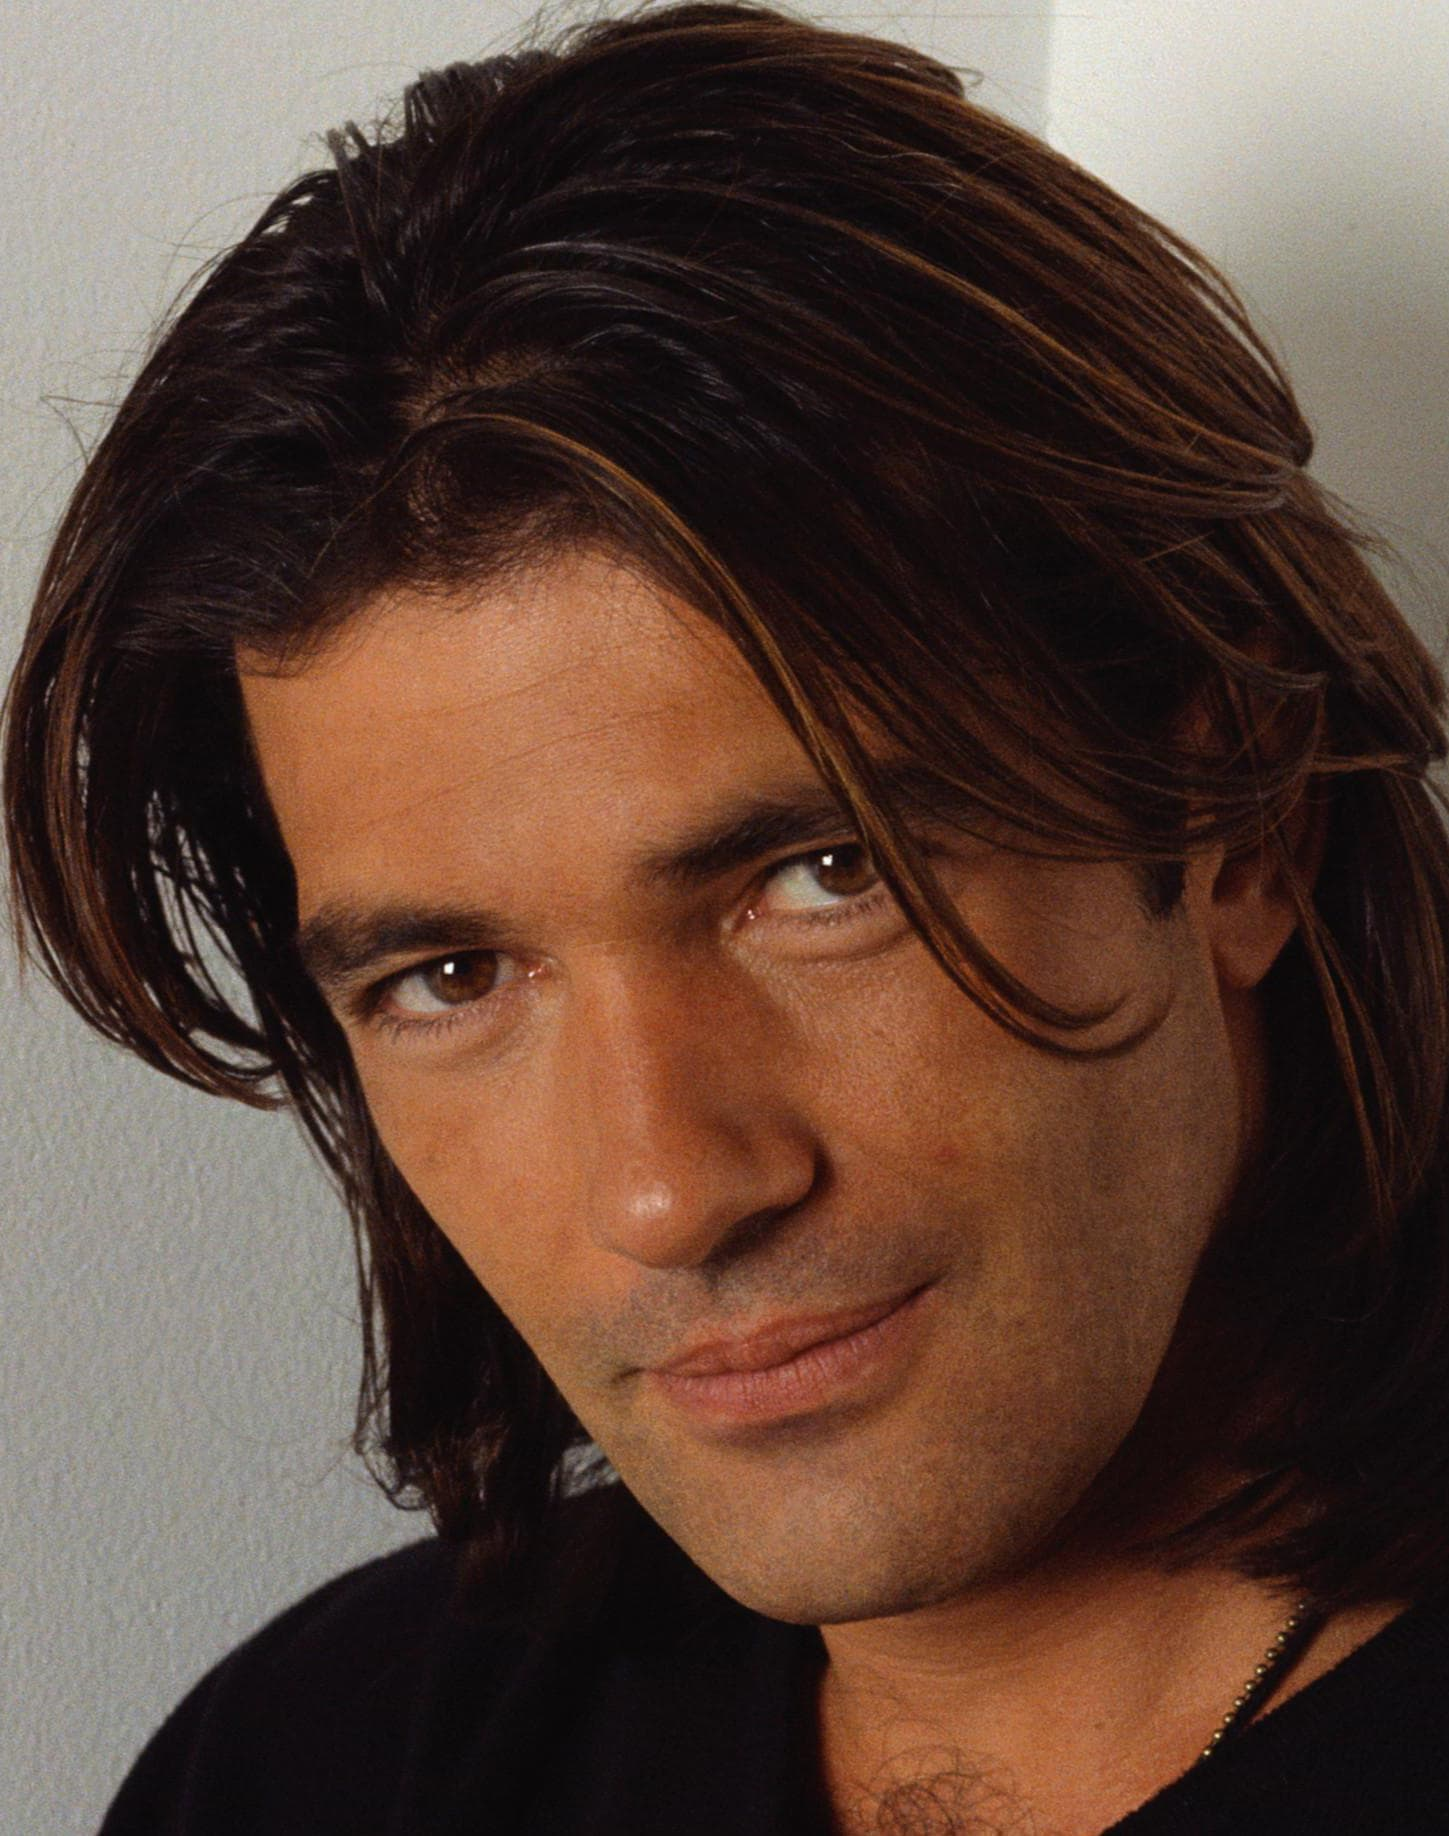 Antonio Banderas HD